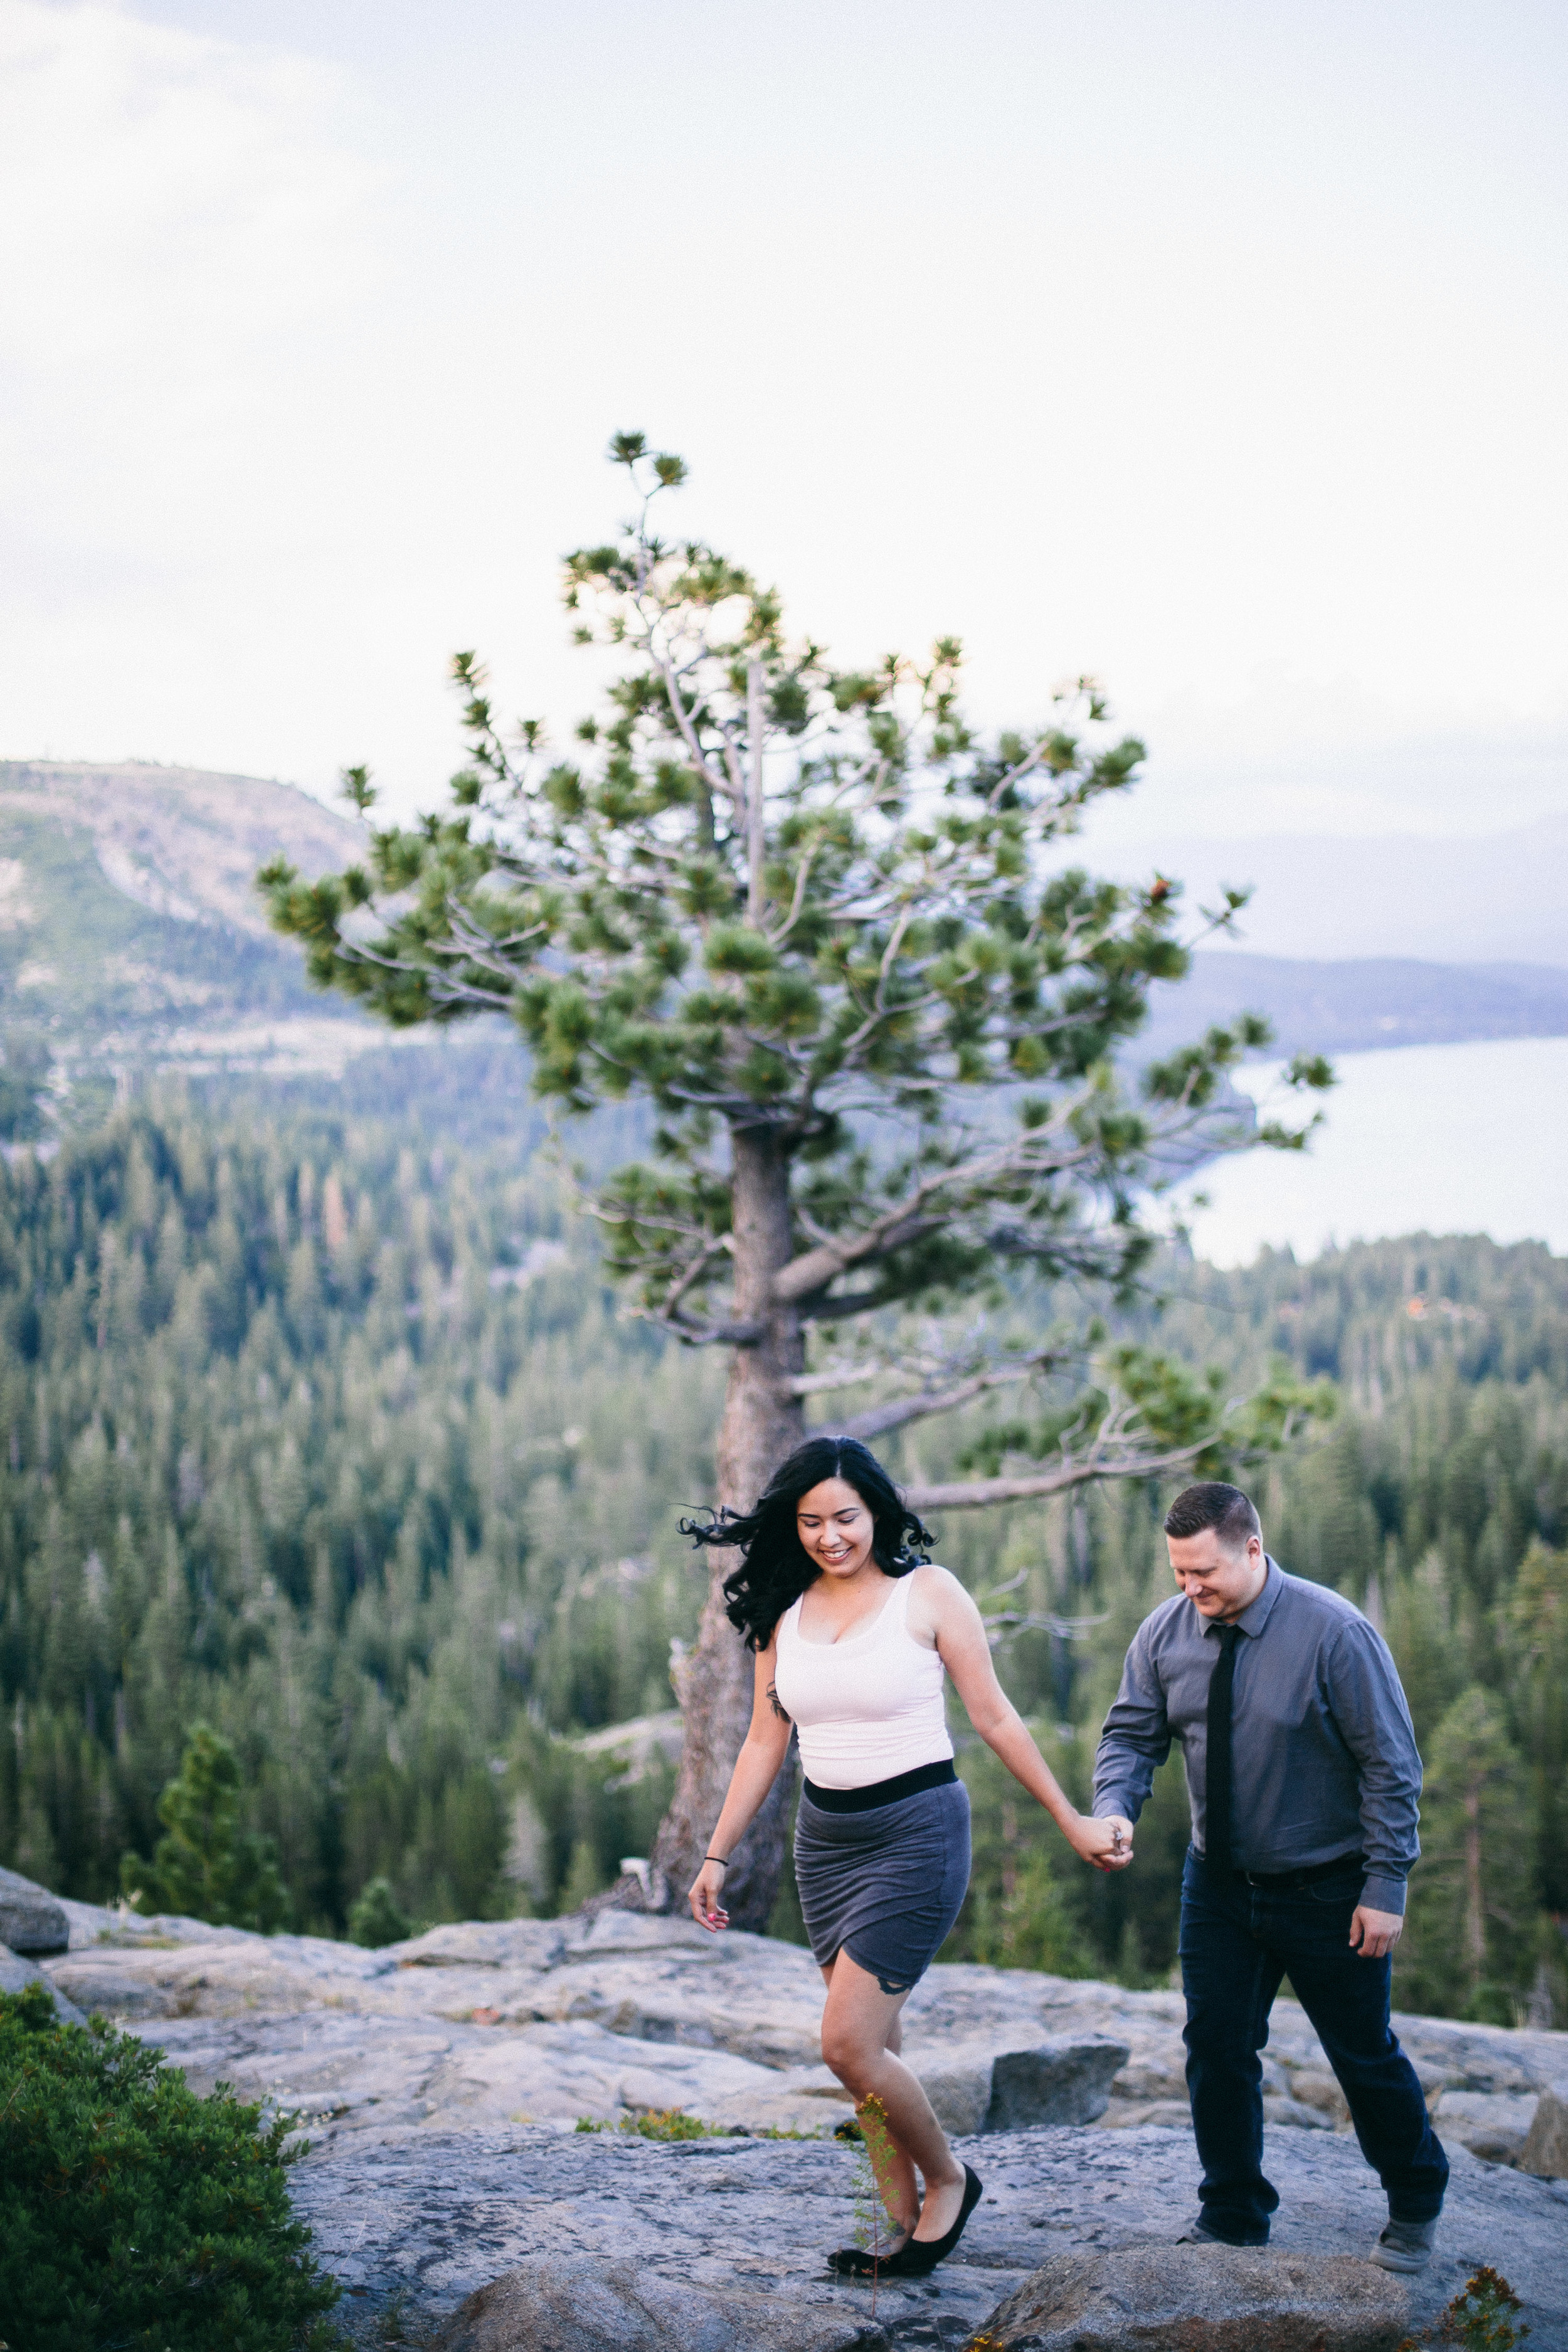 Clint & Veronica Engaged - Corrie Mick Photography-31.jpg